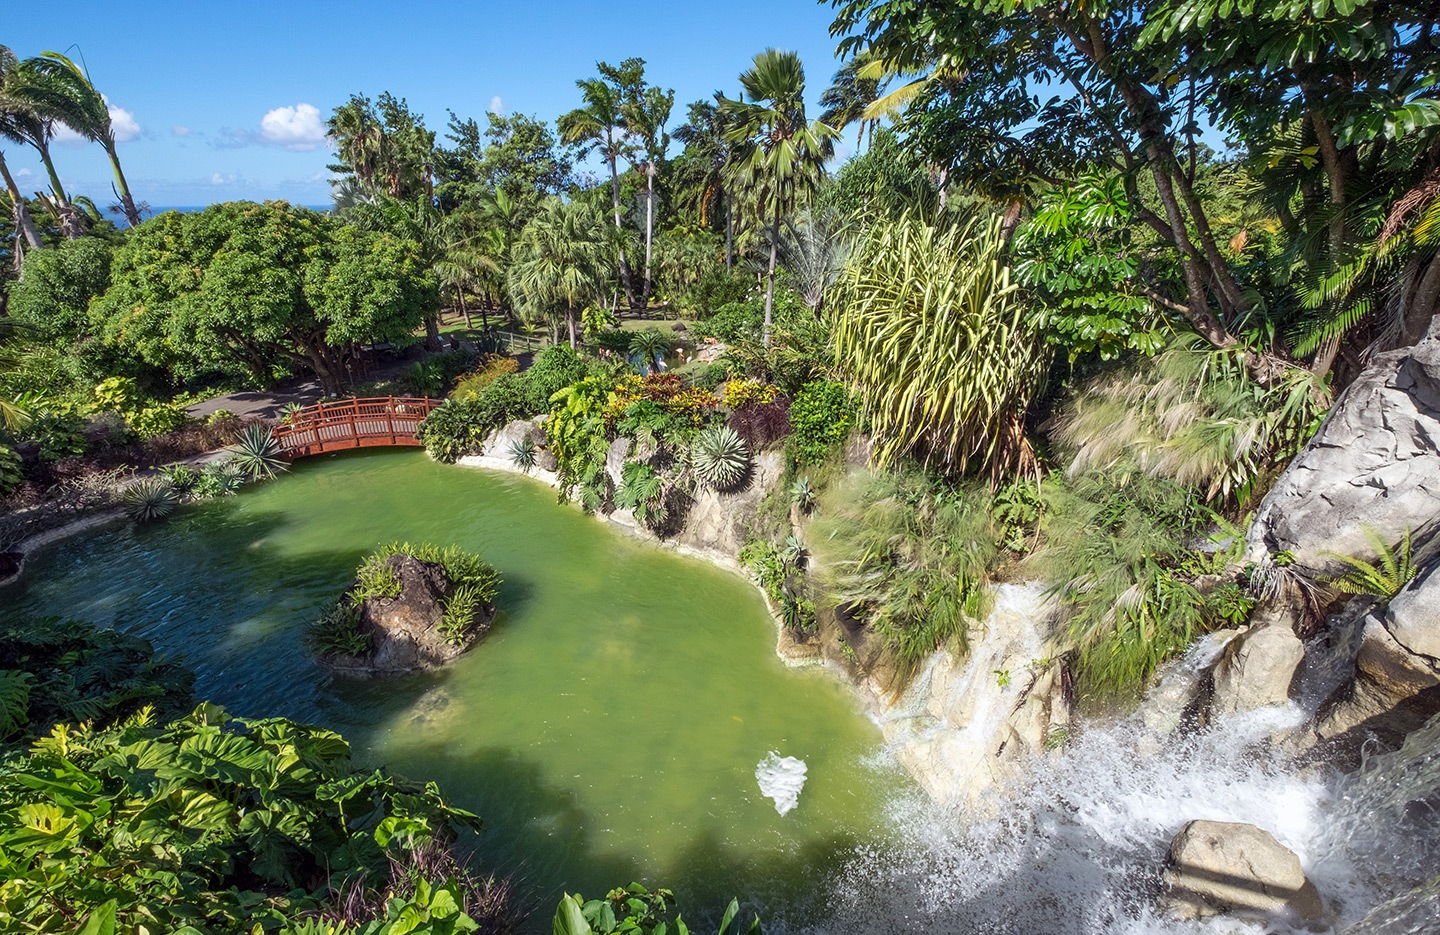 Deshaies' Botanic Gardens, Death in Paradise location Guadeloupe